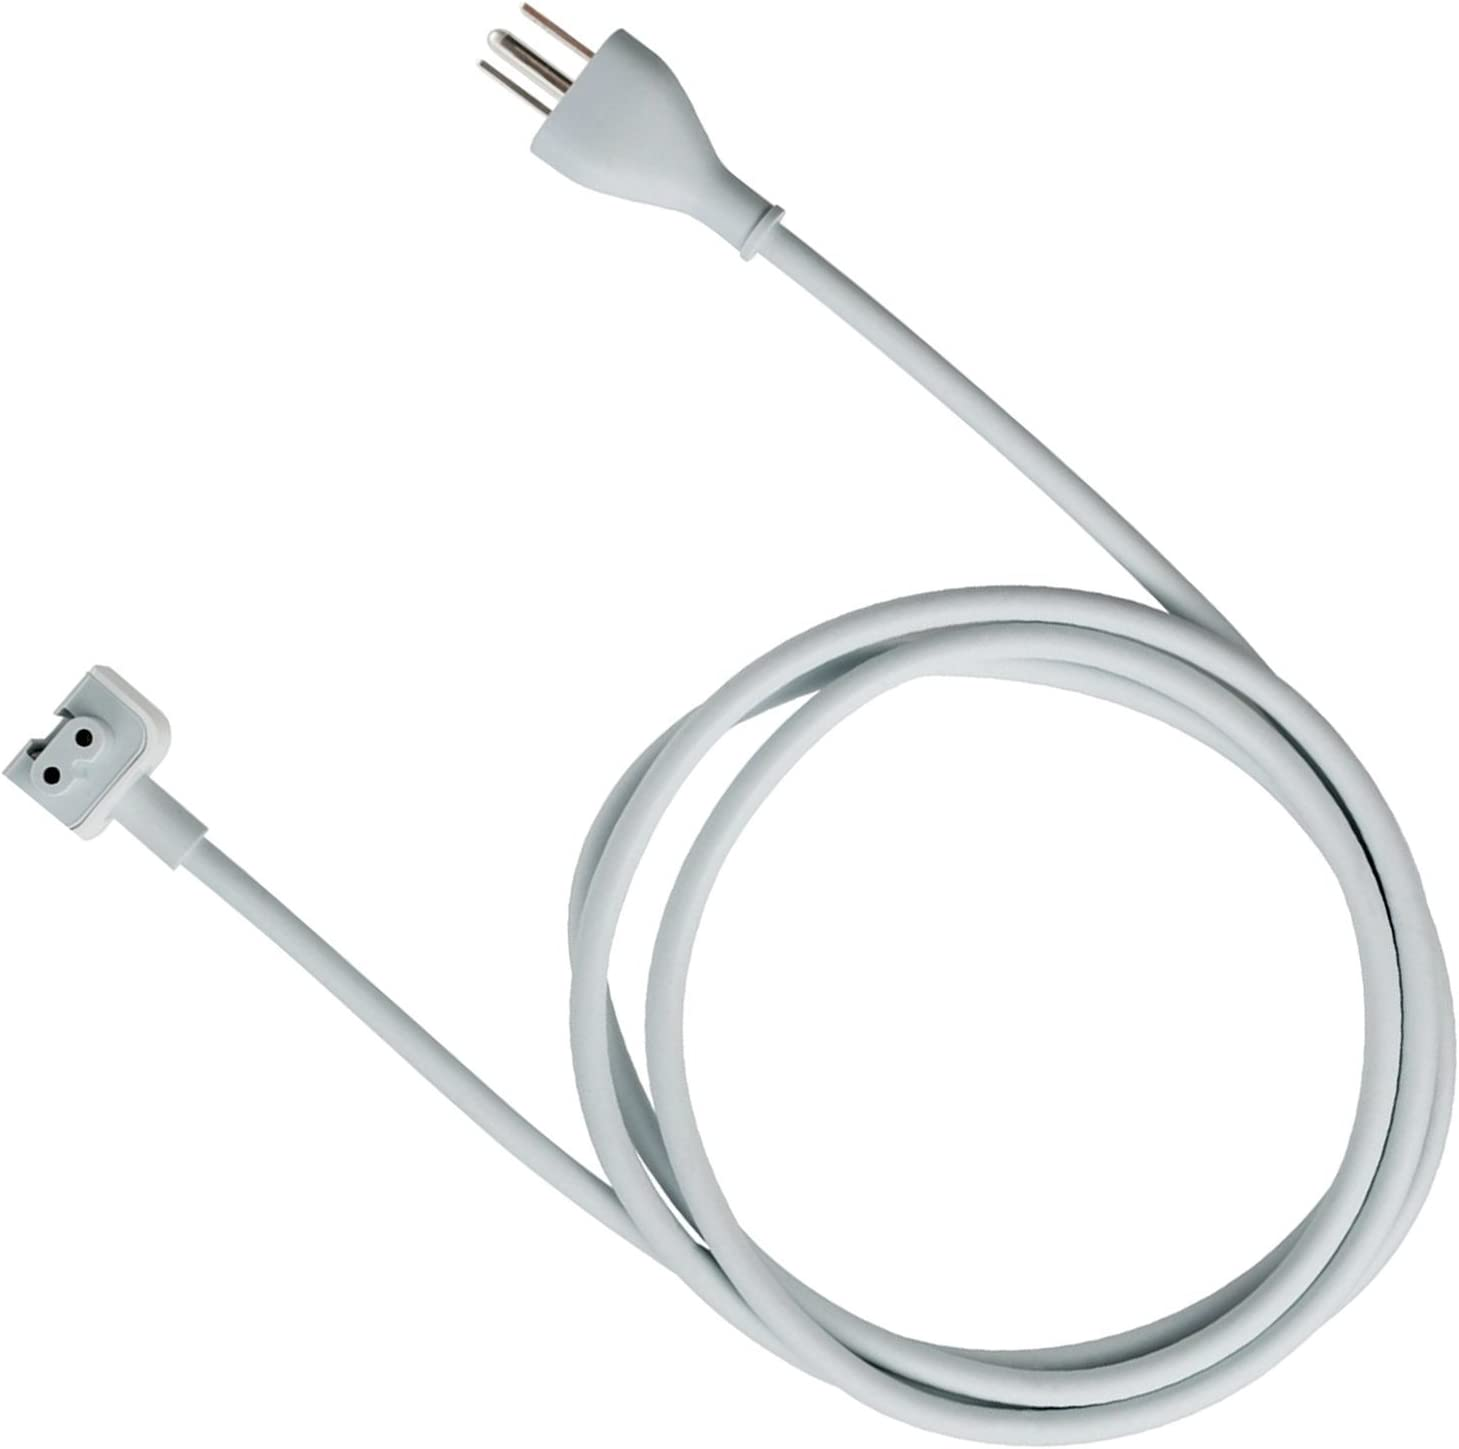 Genuine Apple Macbook Pro Charger Extension Power Cord Cable 6Ft US